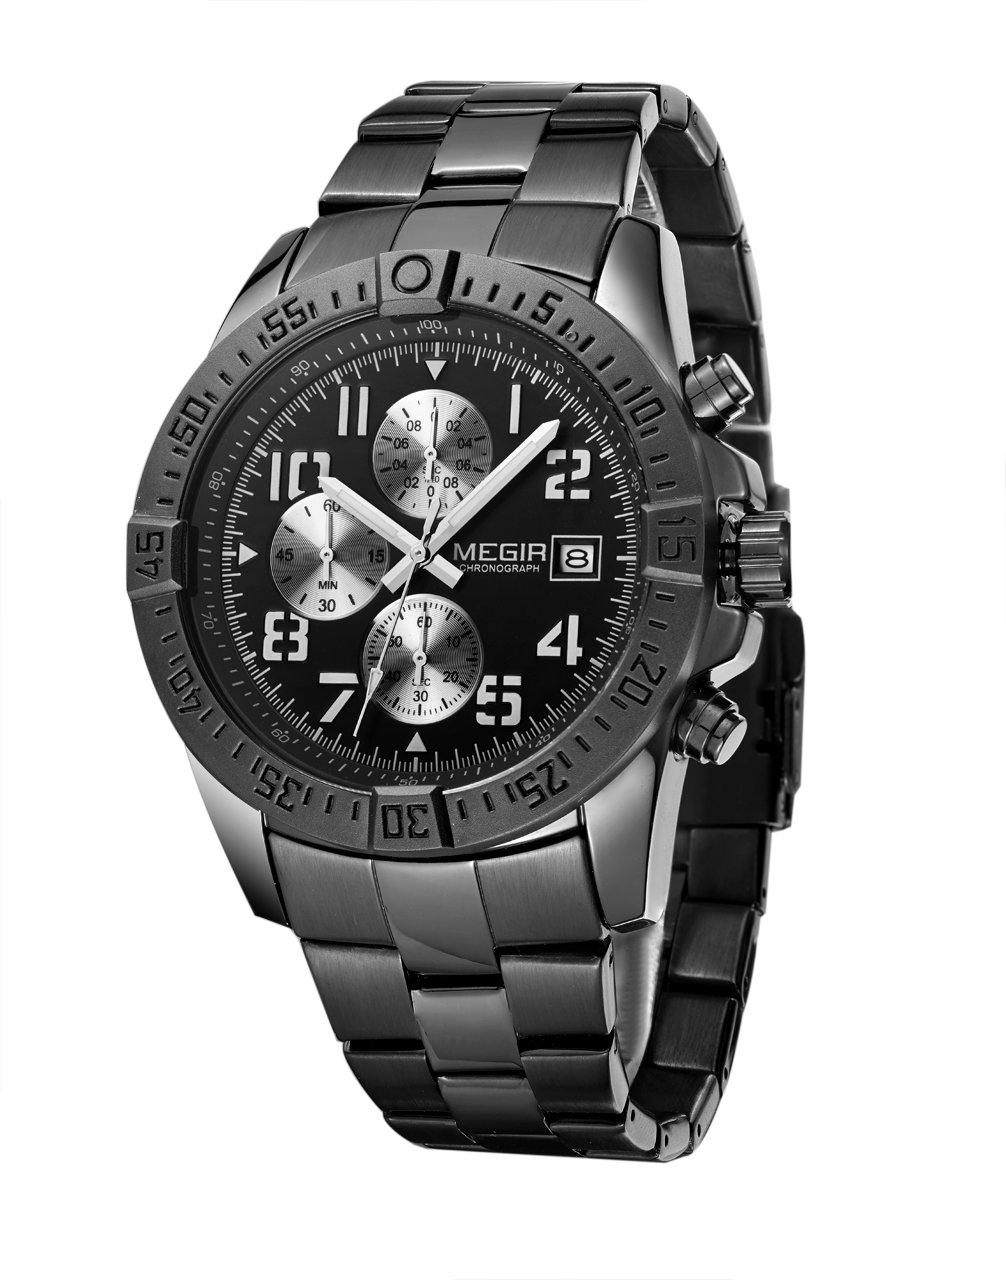 Megir Watch Luxury Waterproof Quartz Watches Men Military Sport Clock 2030 - MEGIR